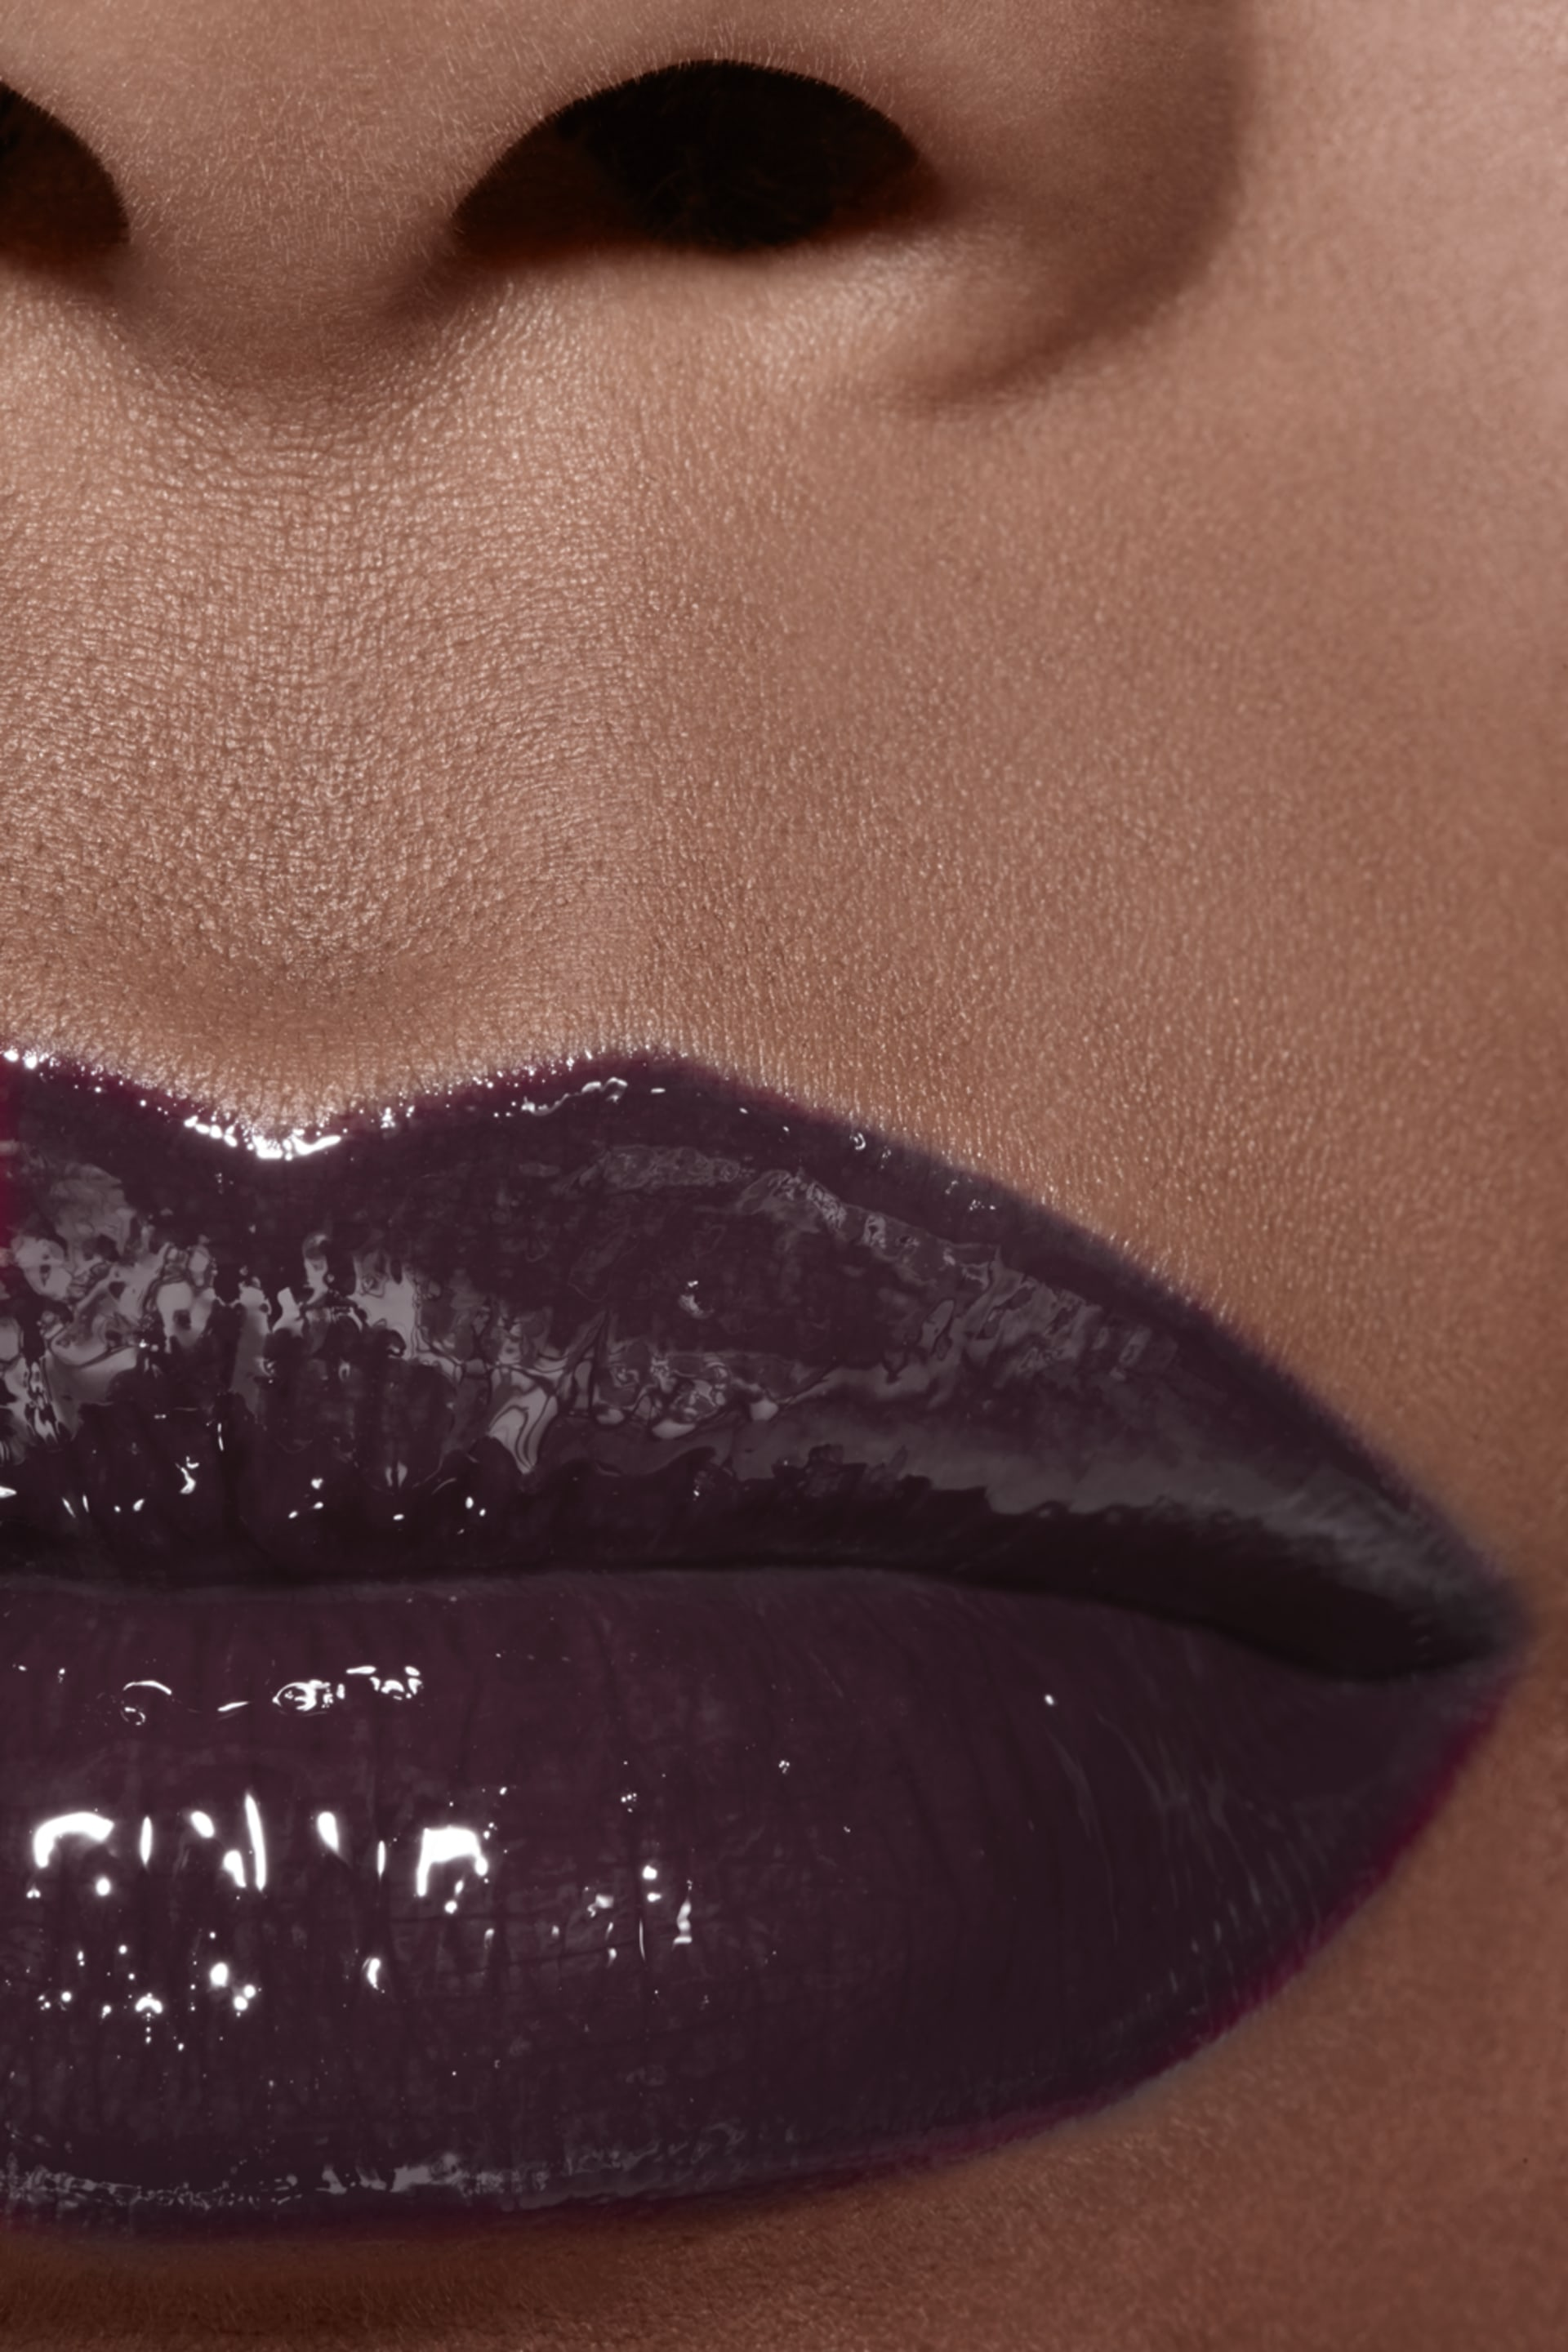 Application makeup visual 2 - ROUGE COCO GLOSS 816 - LAQUE NOIRE